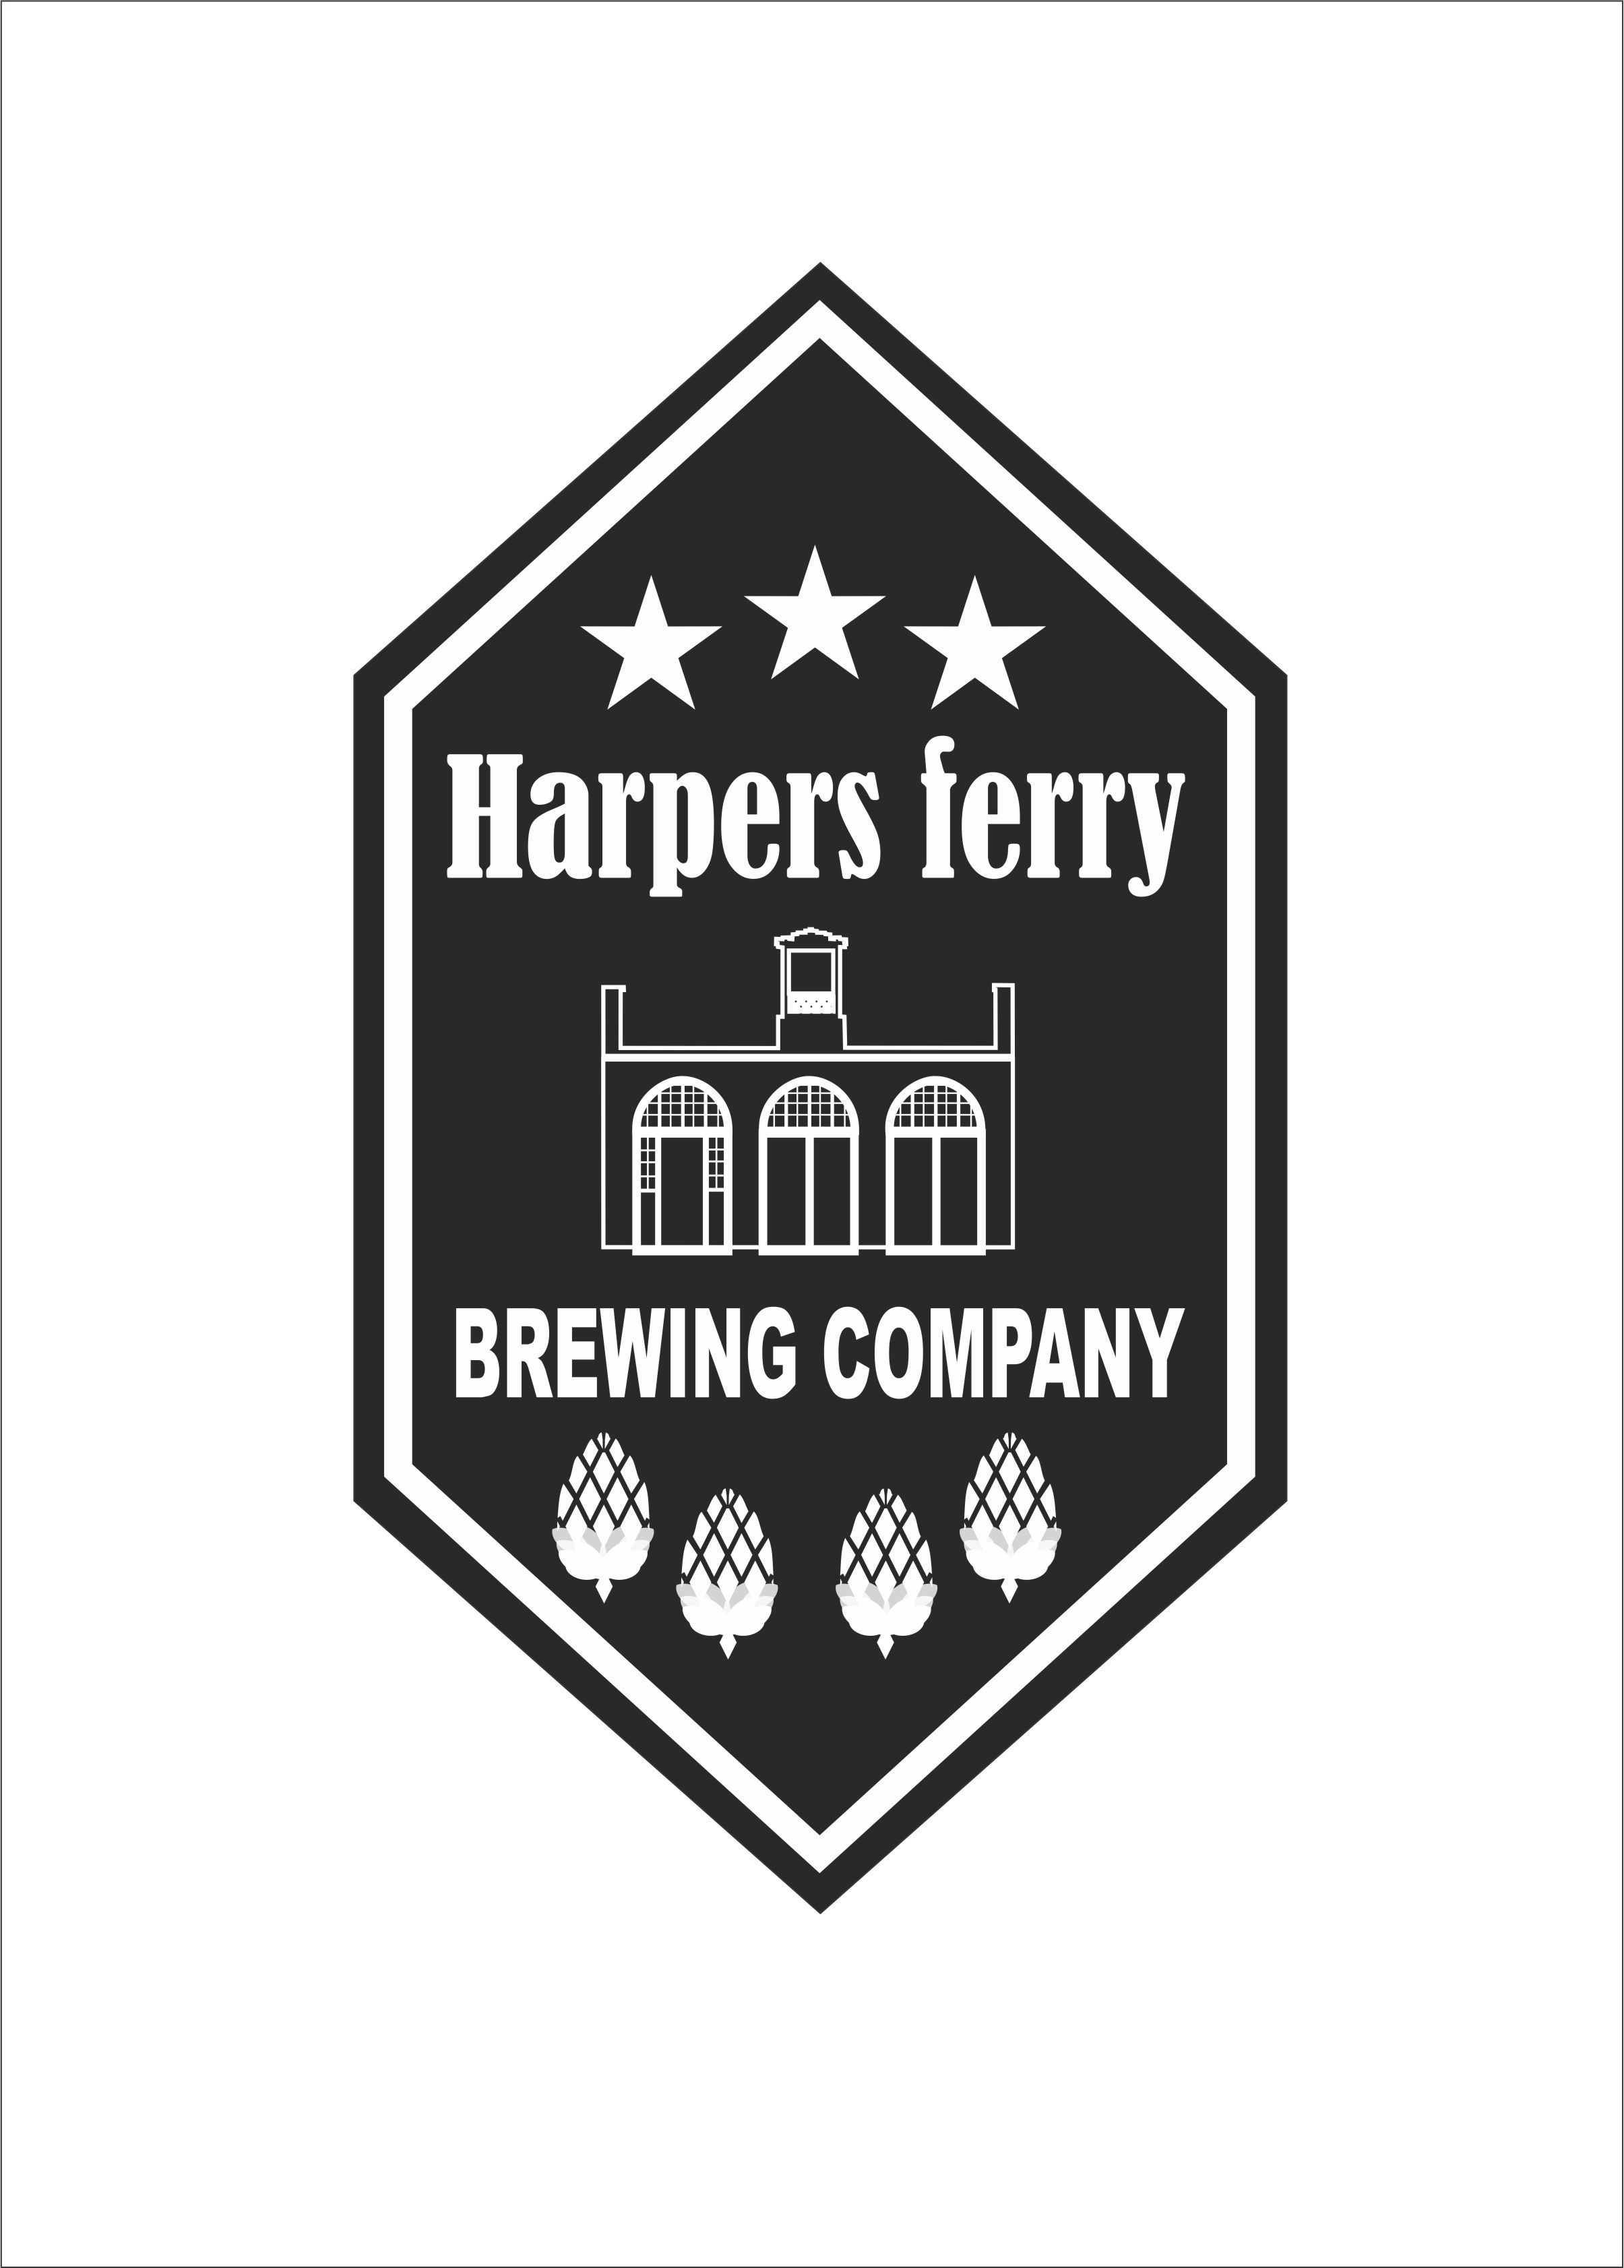 Logo Design by Nikola Kapunac - Entry No. 45 in the Logo Design Contest Unique Logo Design Wanted for Harpers ferry brewing company.